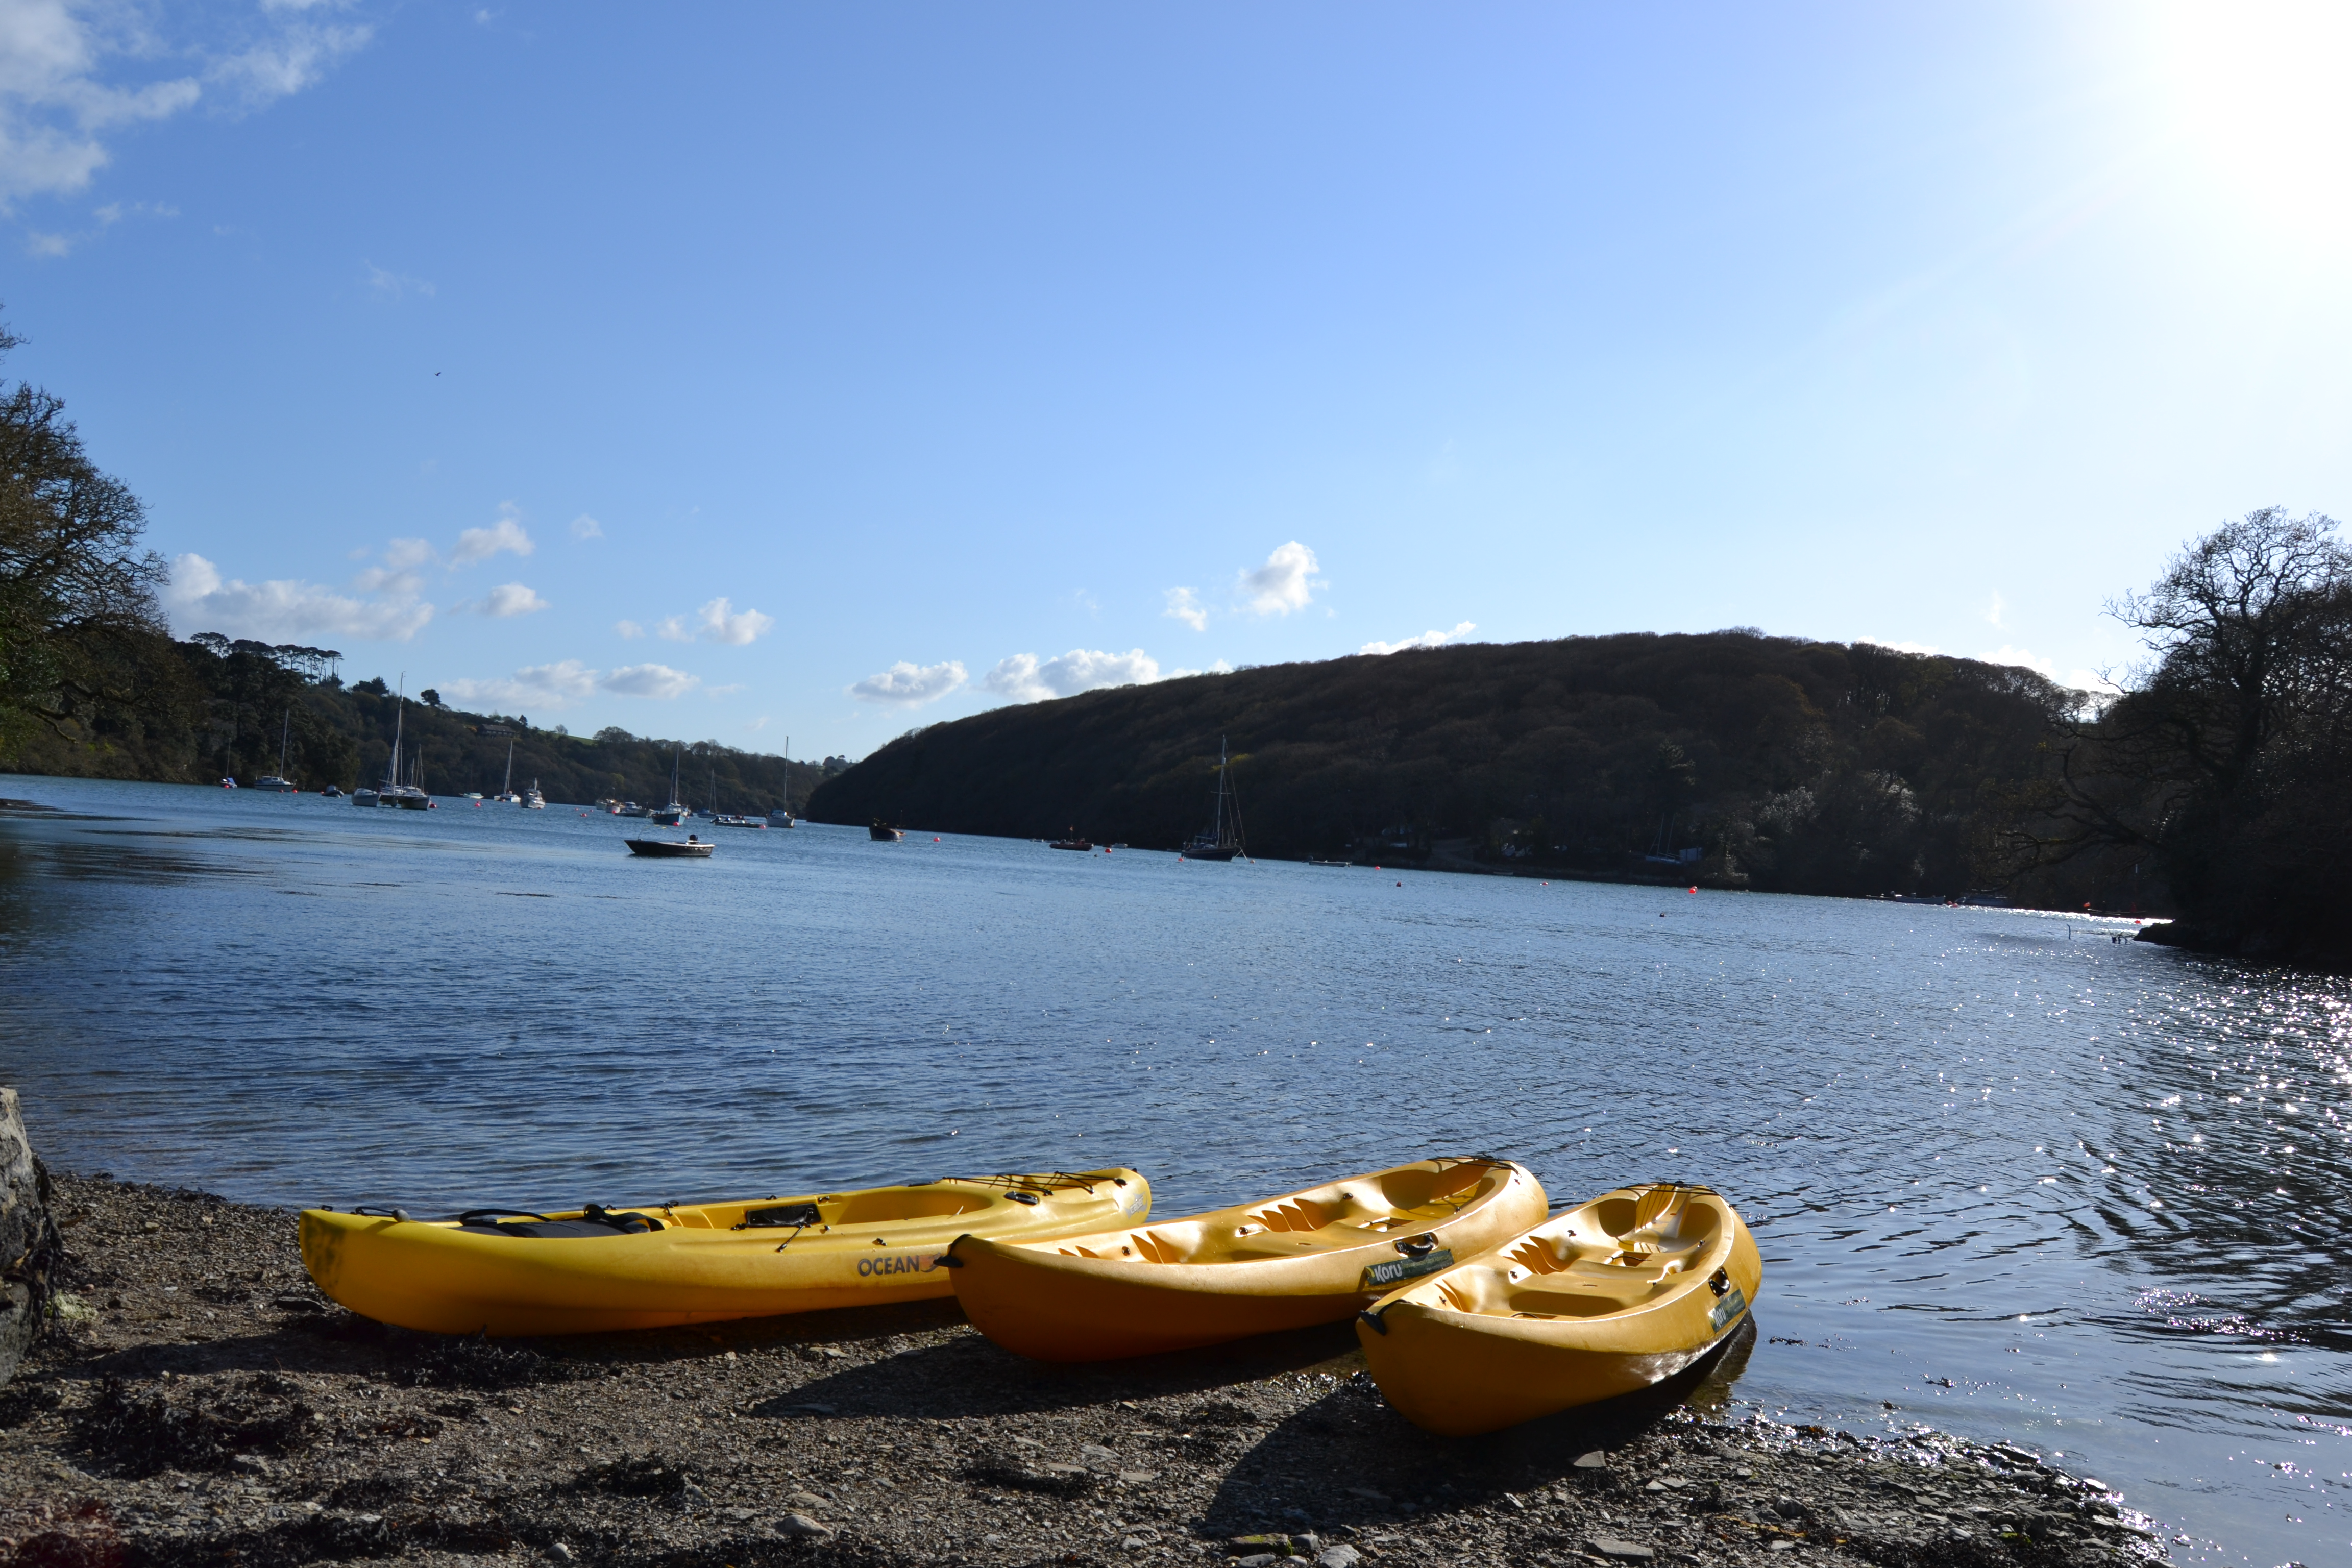 The Cornwall Guide comes on a Frenchmans Creek Adventure